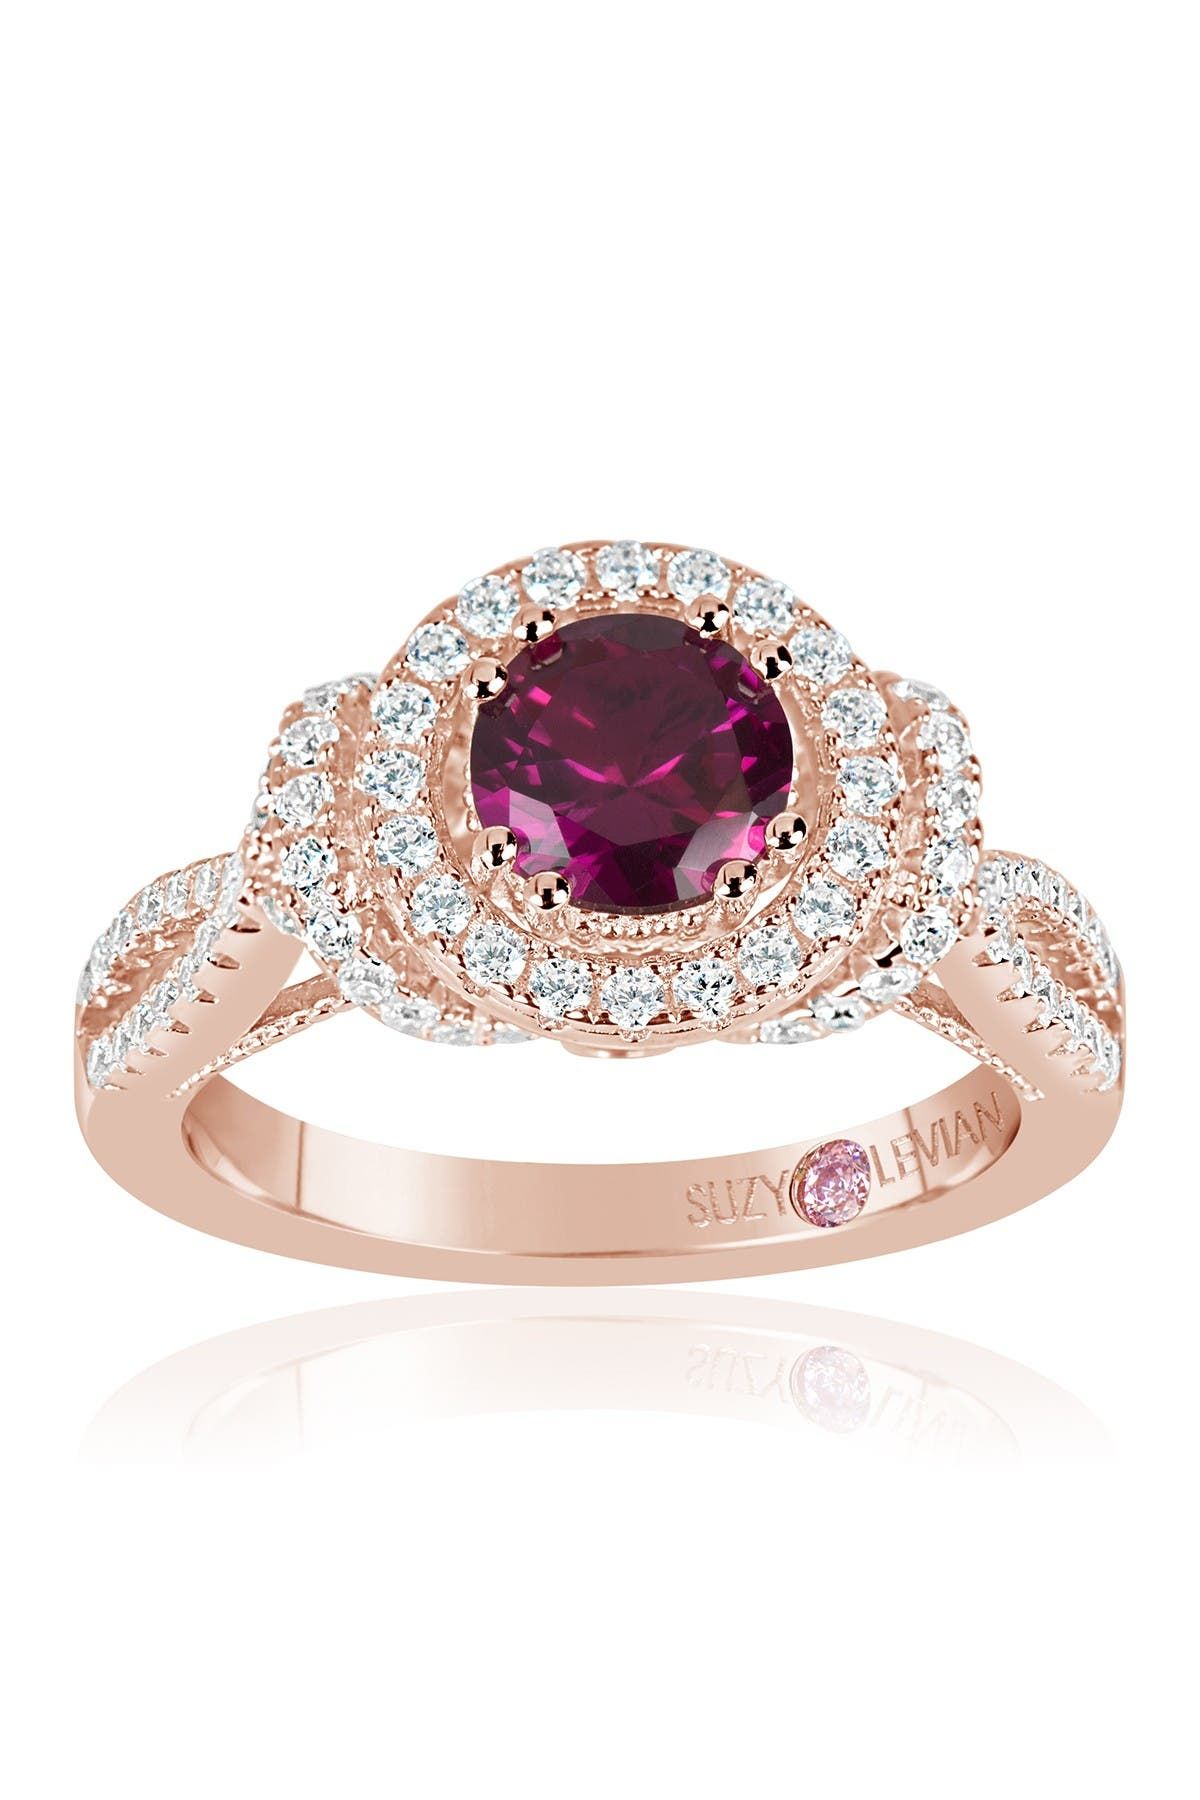 Image of Suzy Levian Rose Gold Plated Sterling Silver Lab Ruby CZ Ring